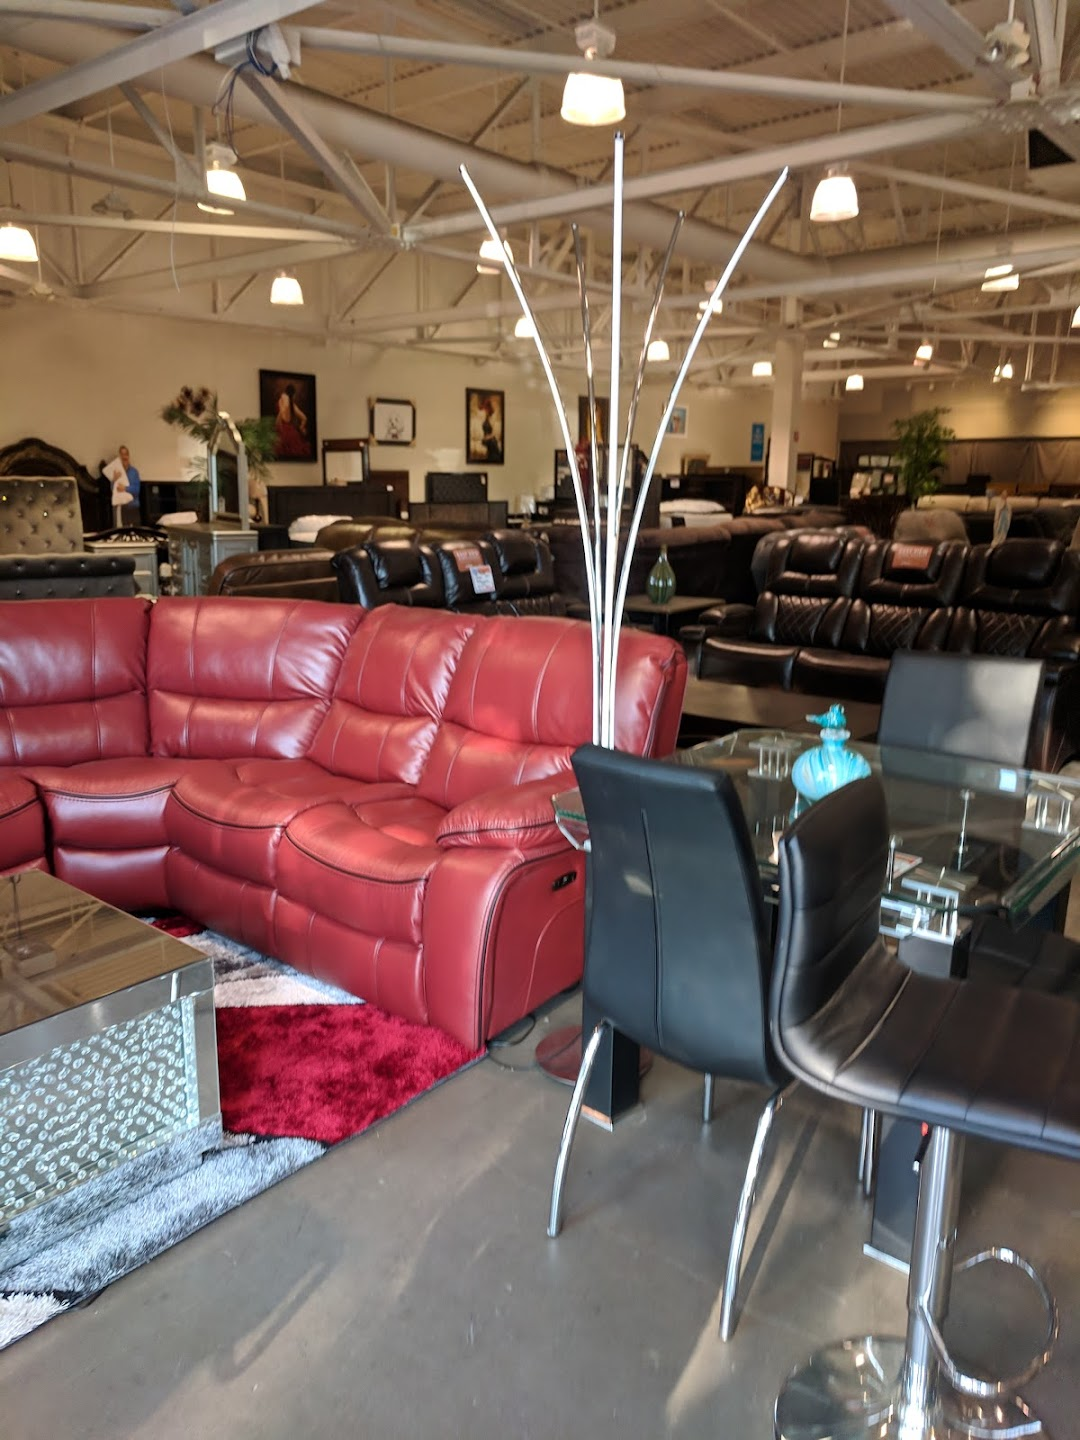 Home Interiors Furniture in the city Milpitas